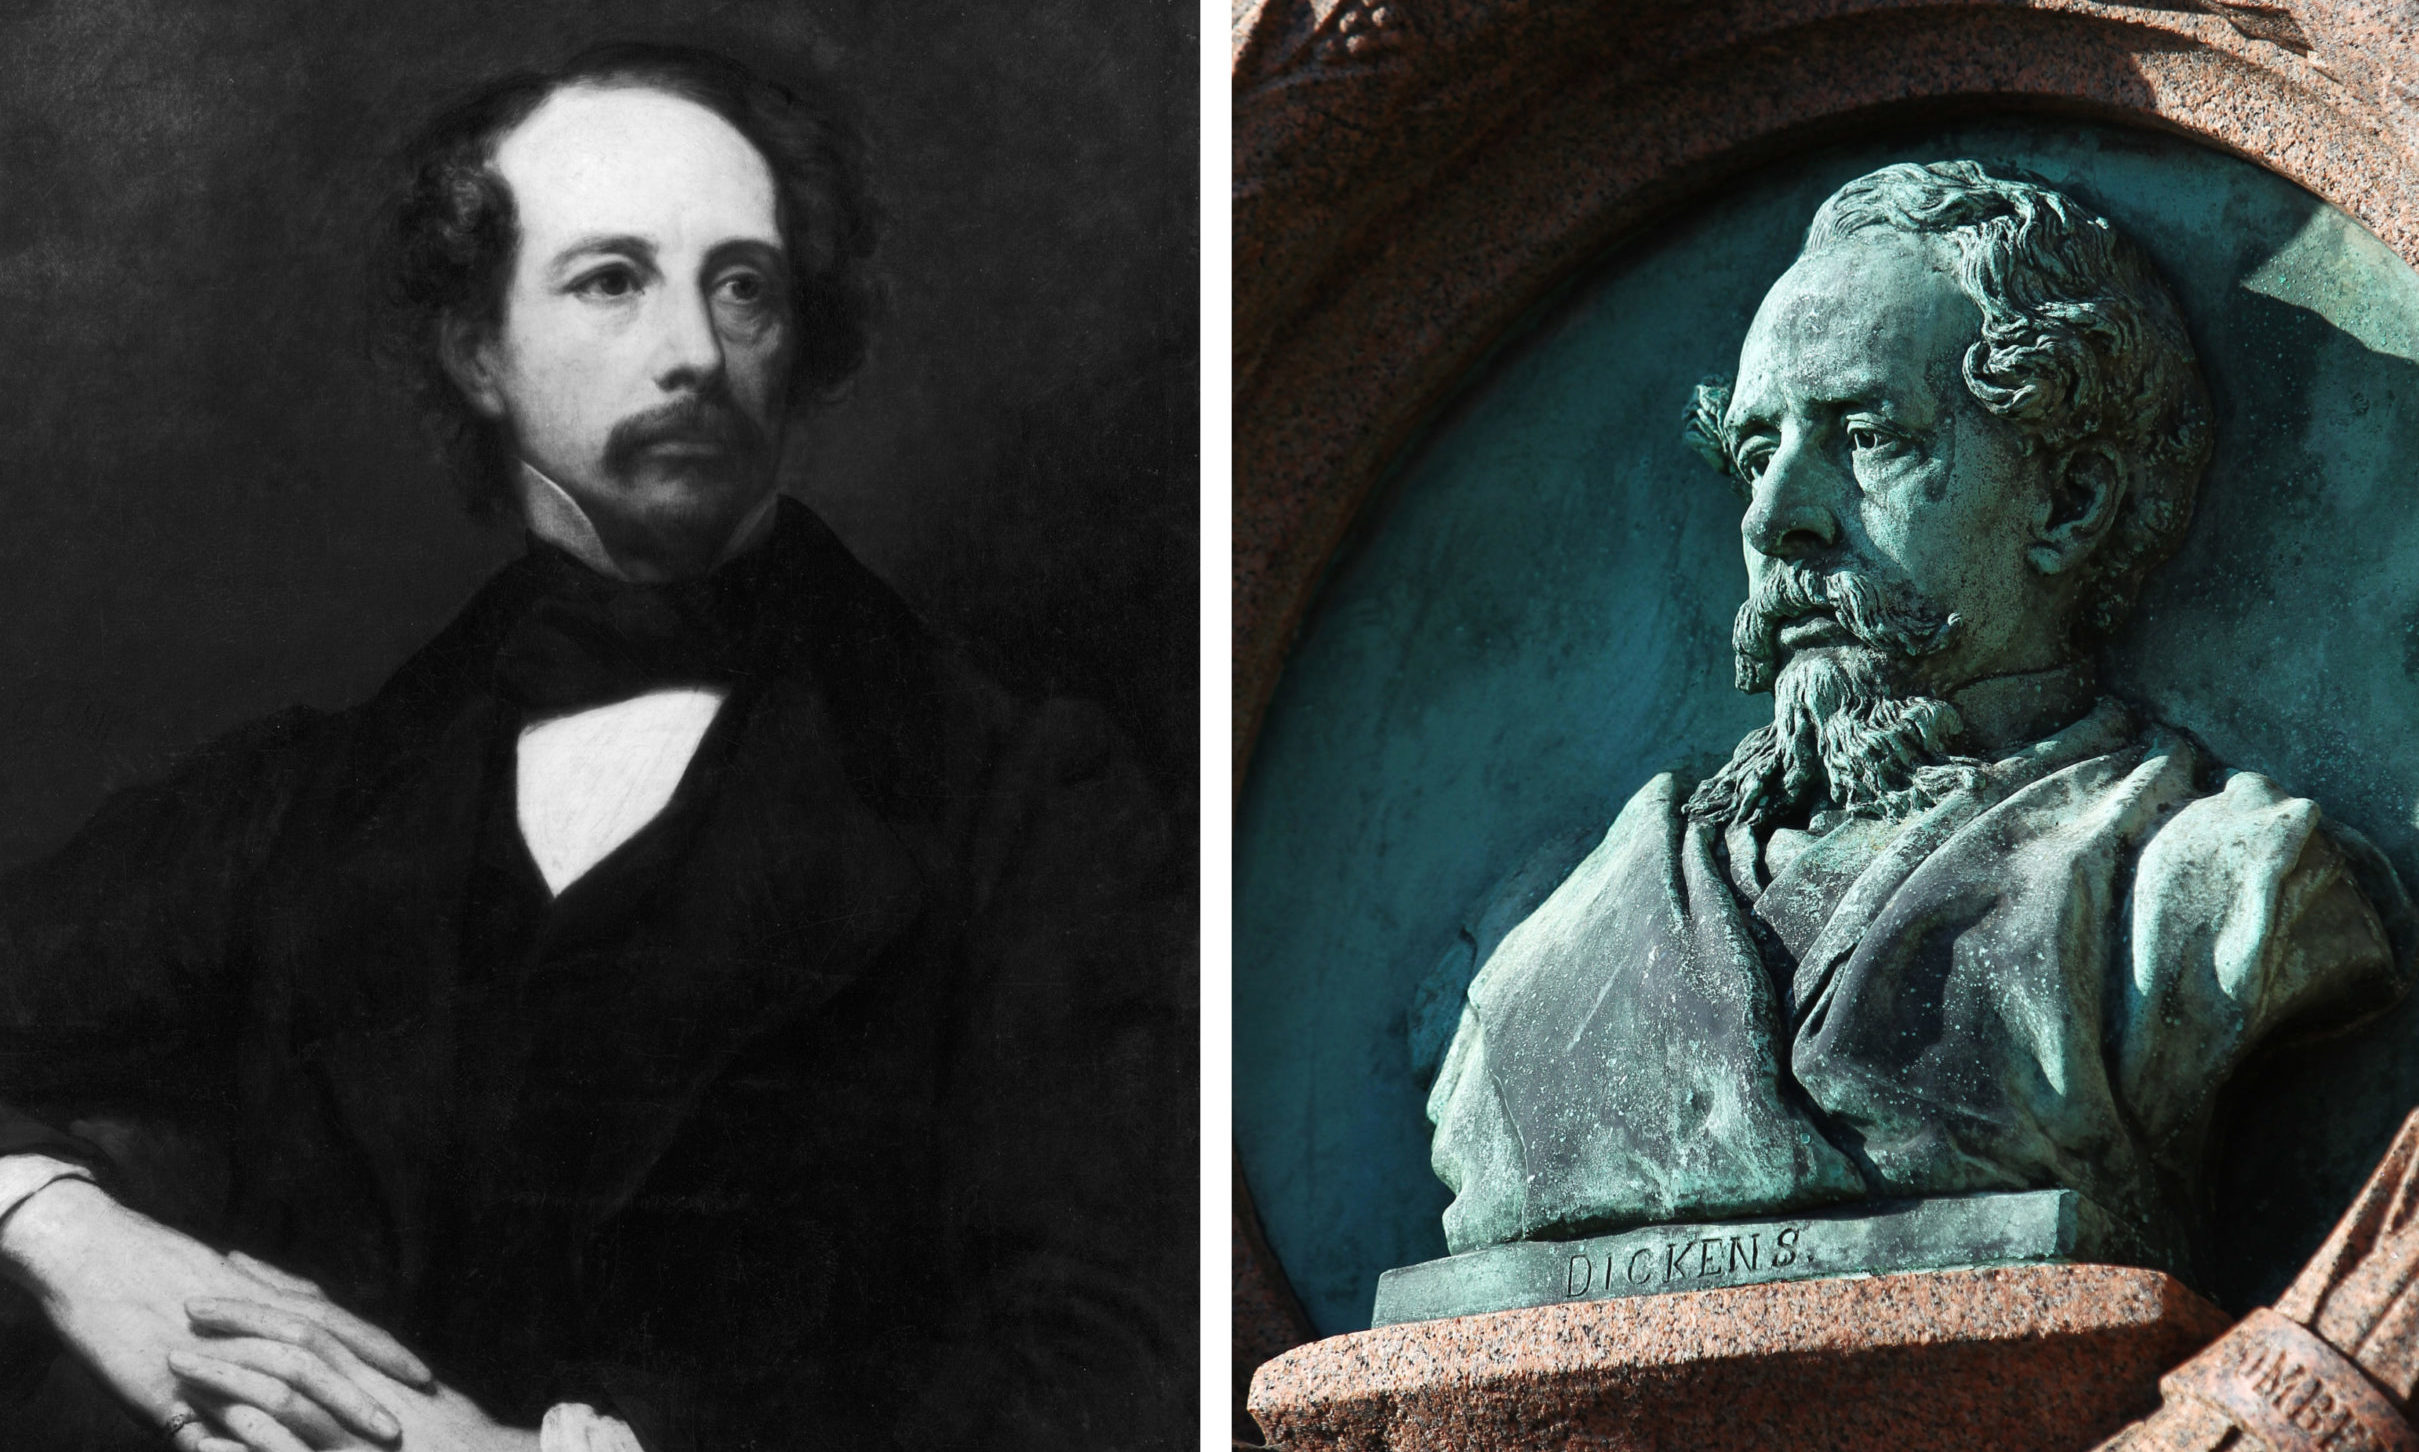 Charles Dickens visited Aberdeen and spoke at the Music Hall.